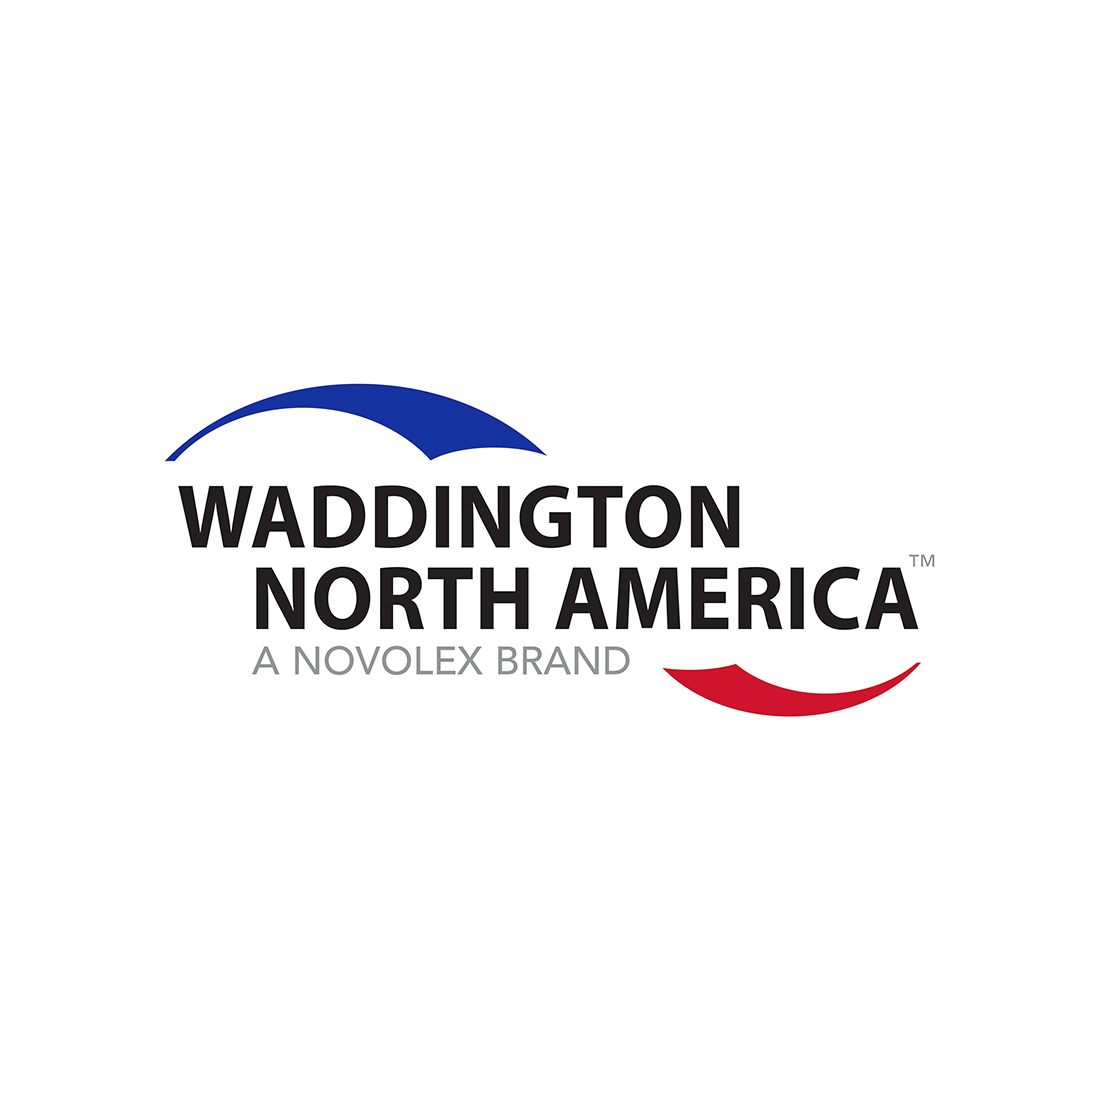 Waddington North America